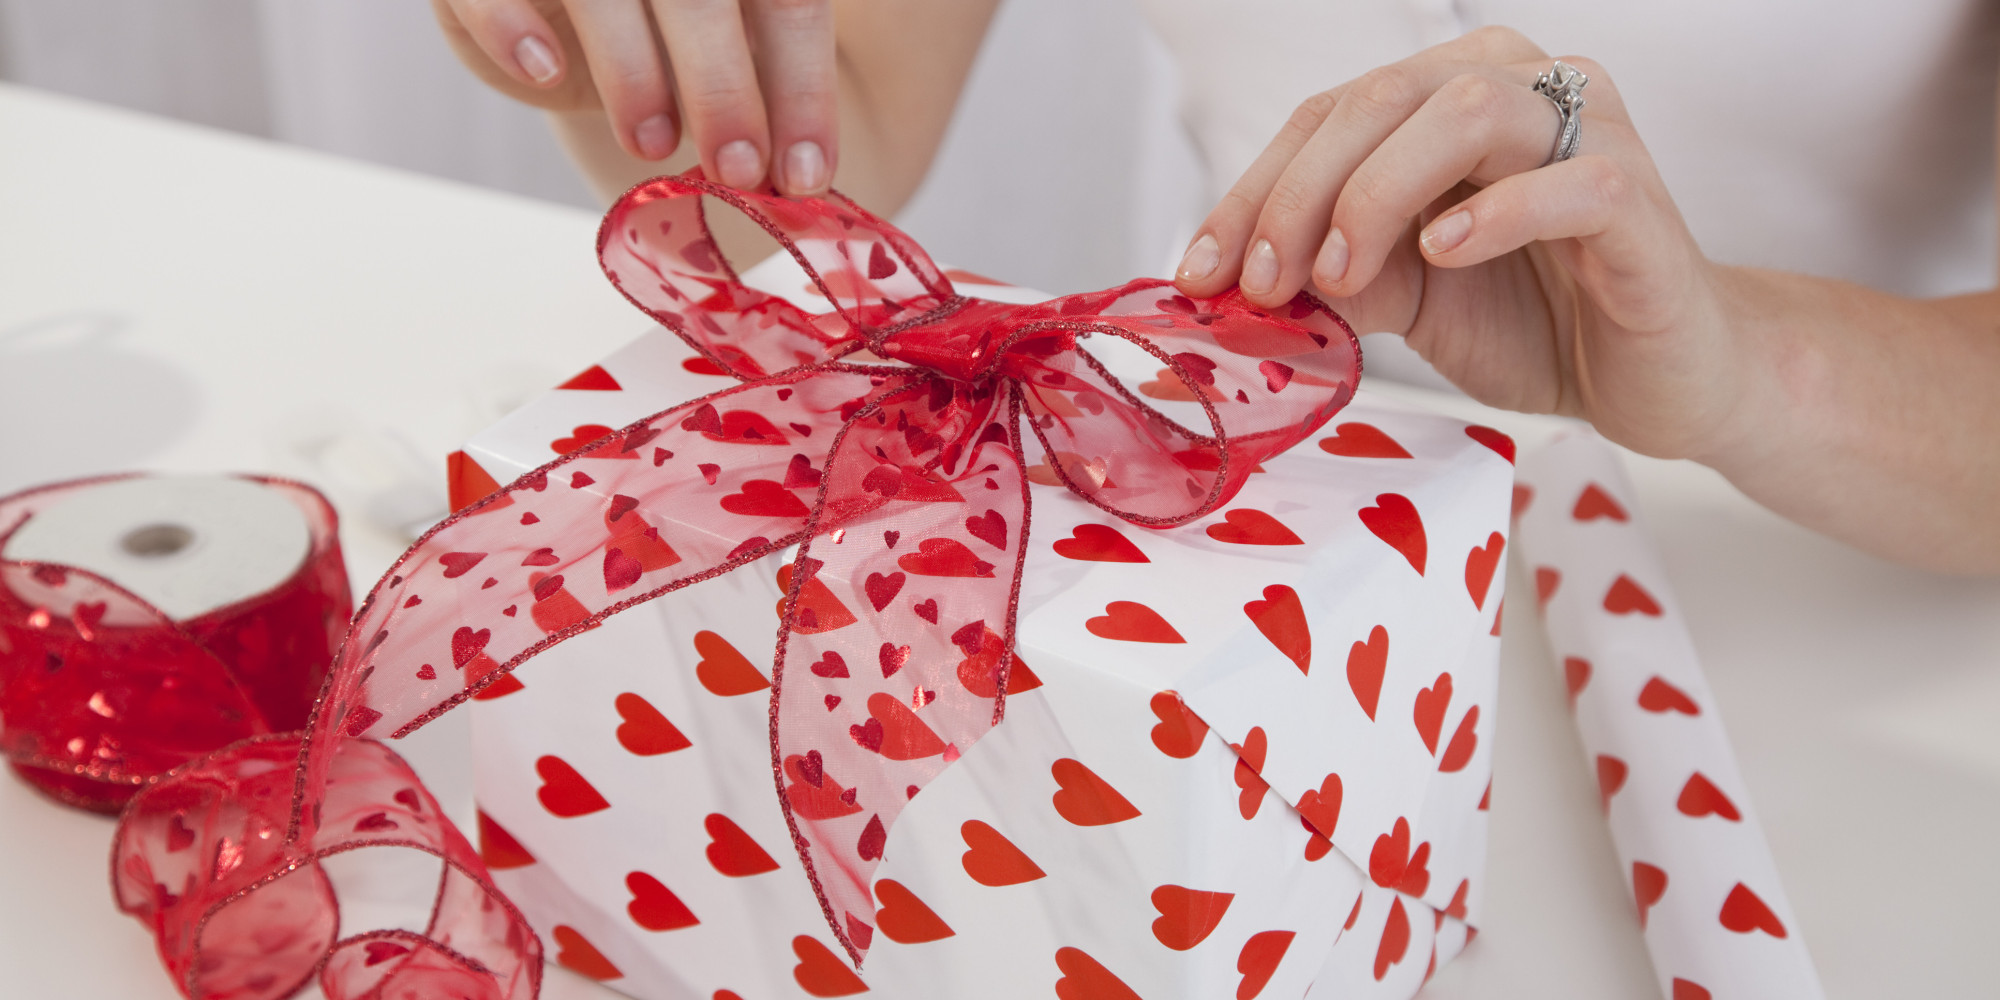 What to get someone you ve just started dating for valentine s day